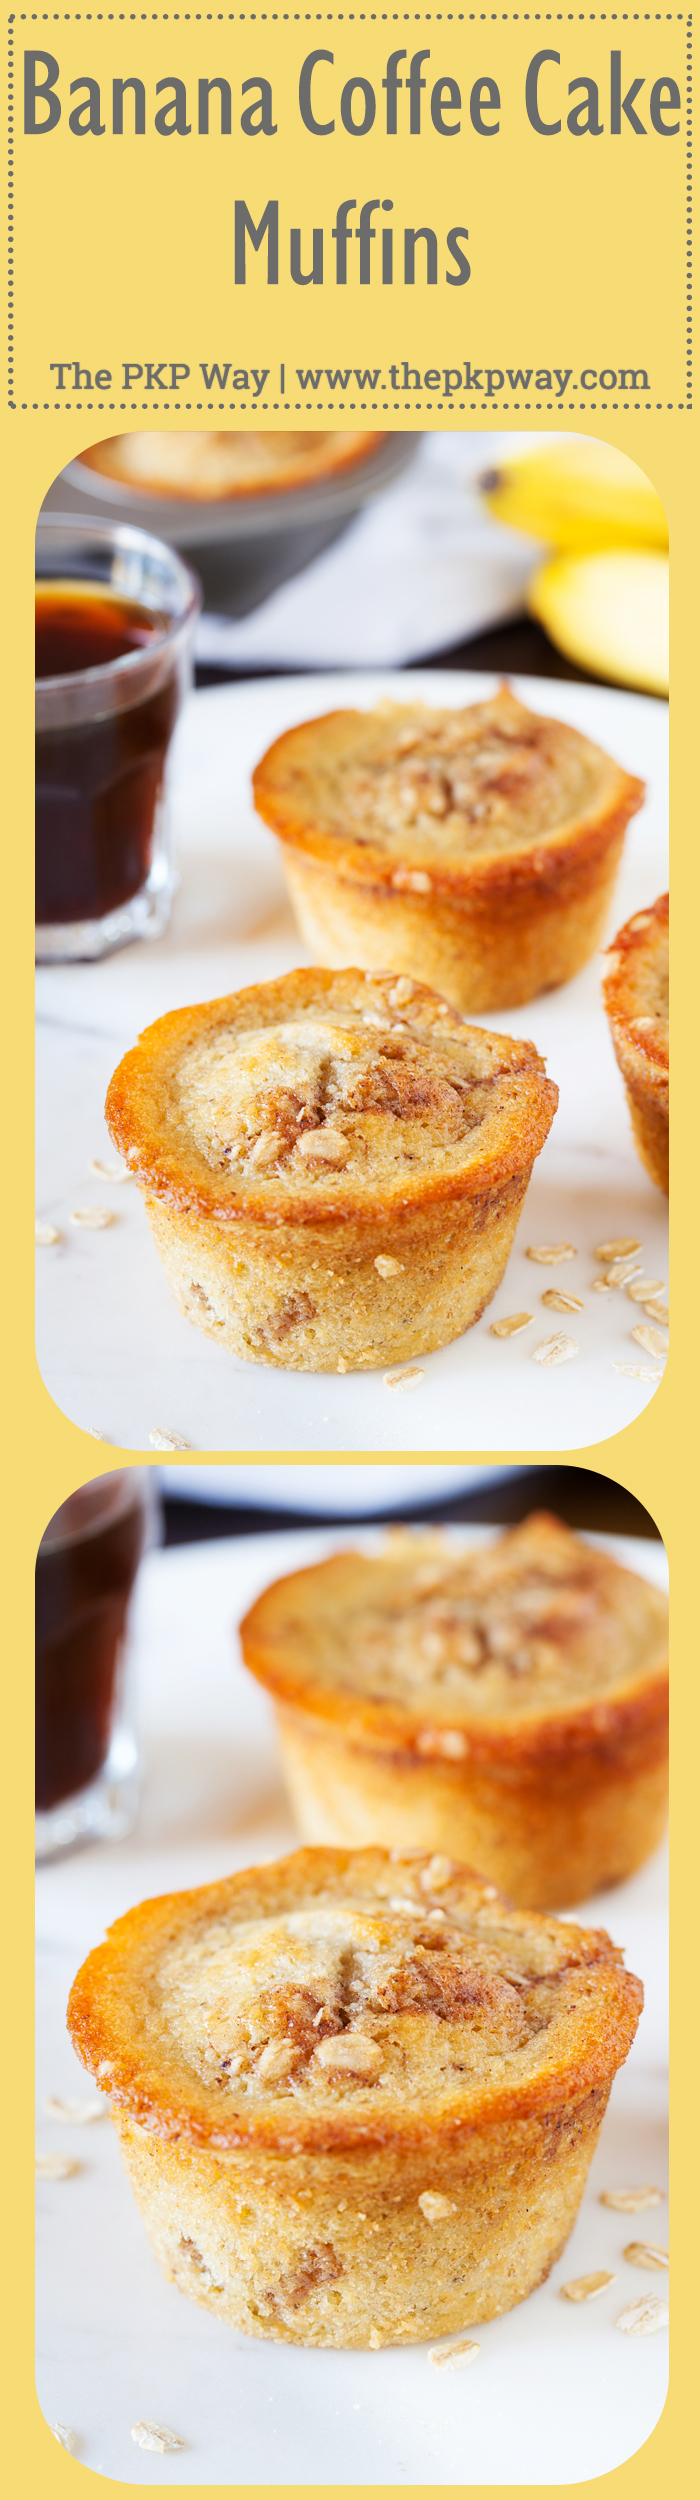 Banana Coffee Cake Muffins | The PKP Way